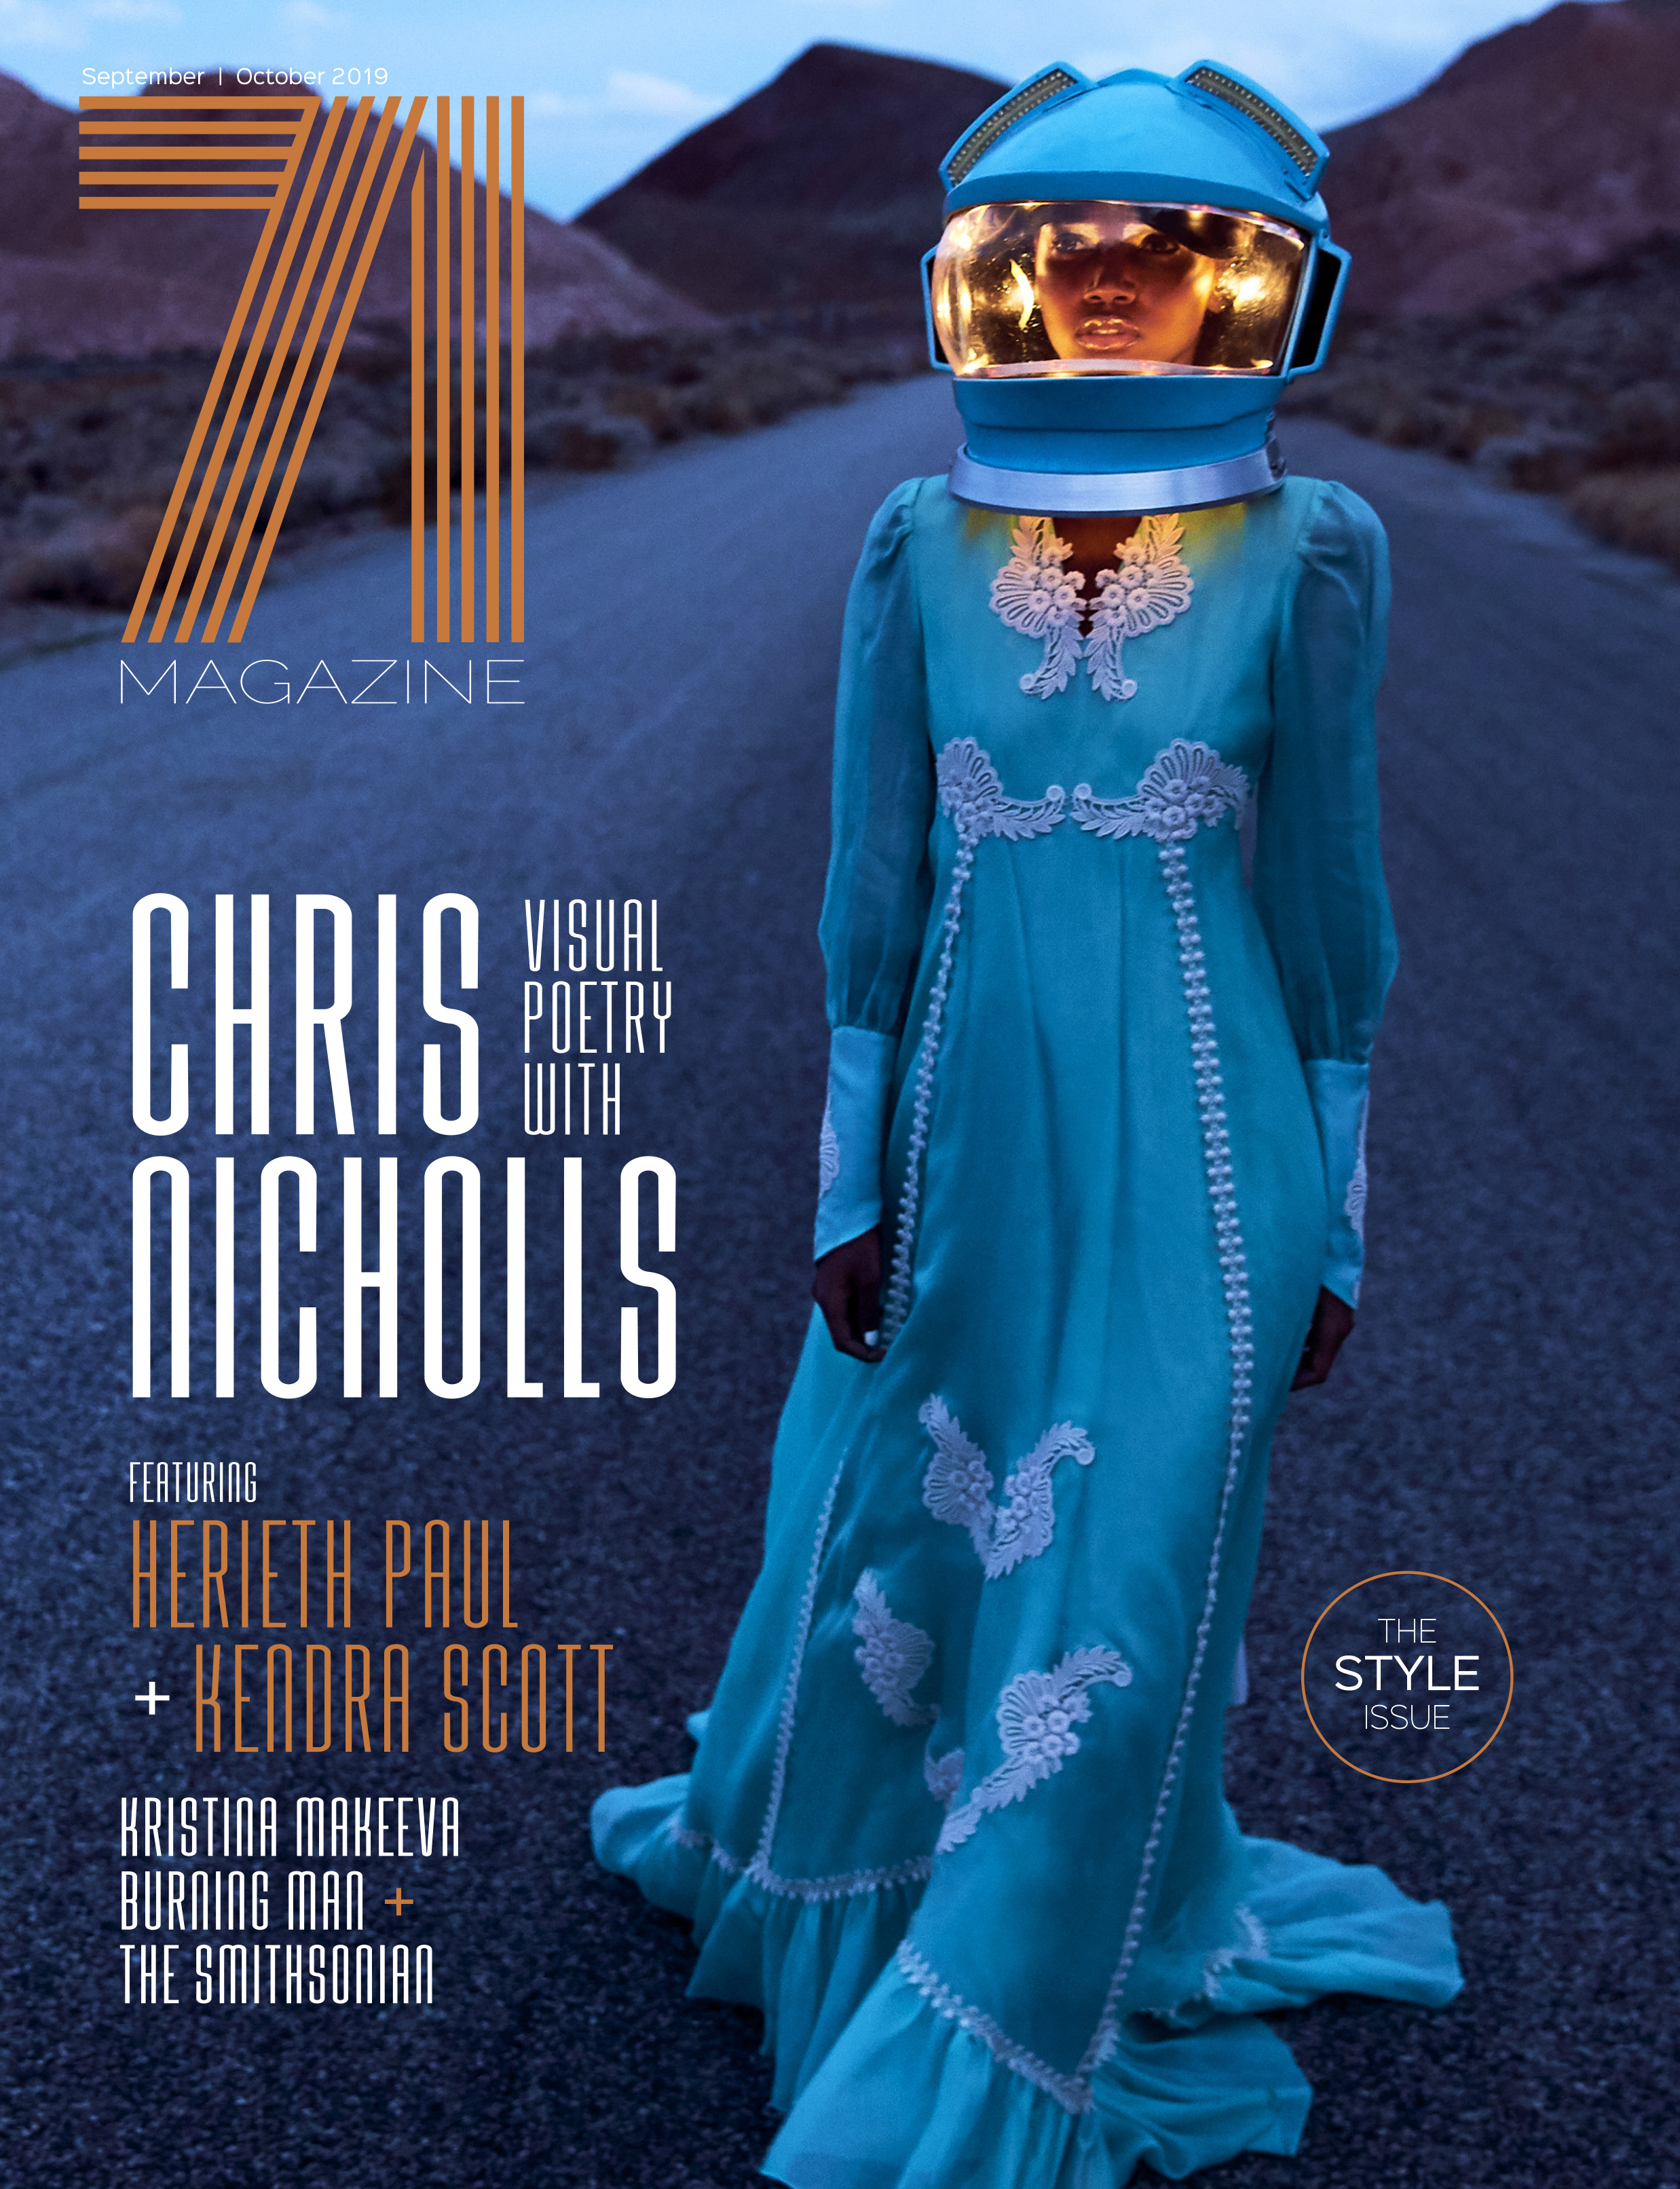 Women in space hat and glamorous dress on the Style issue cover.